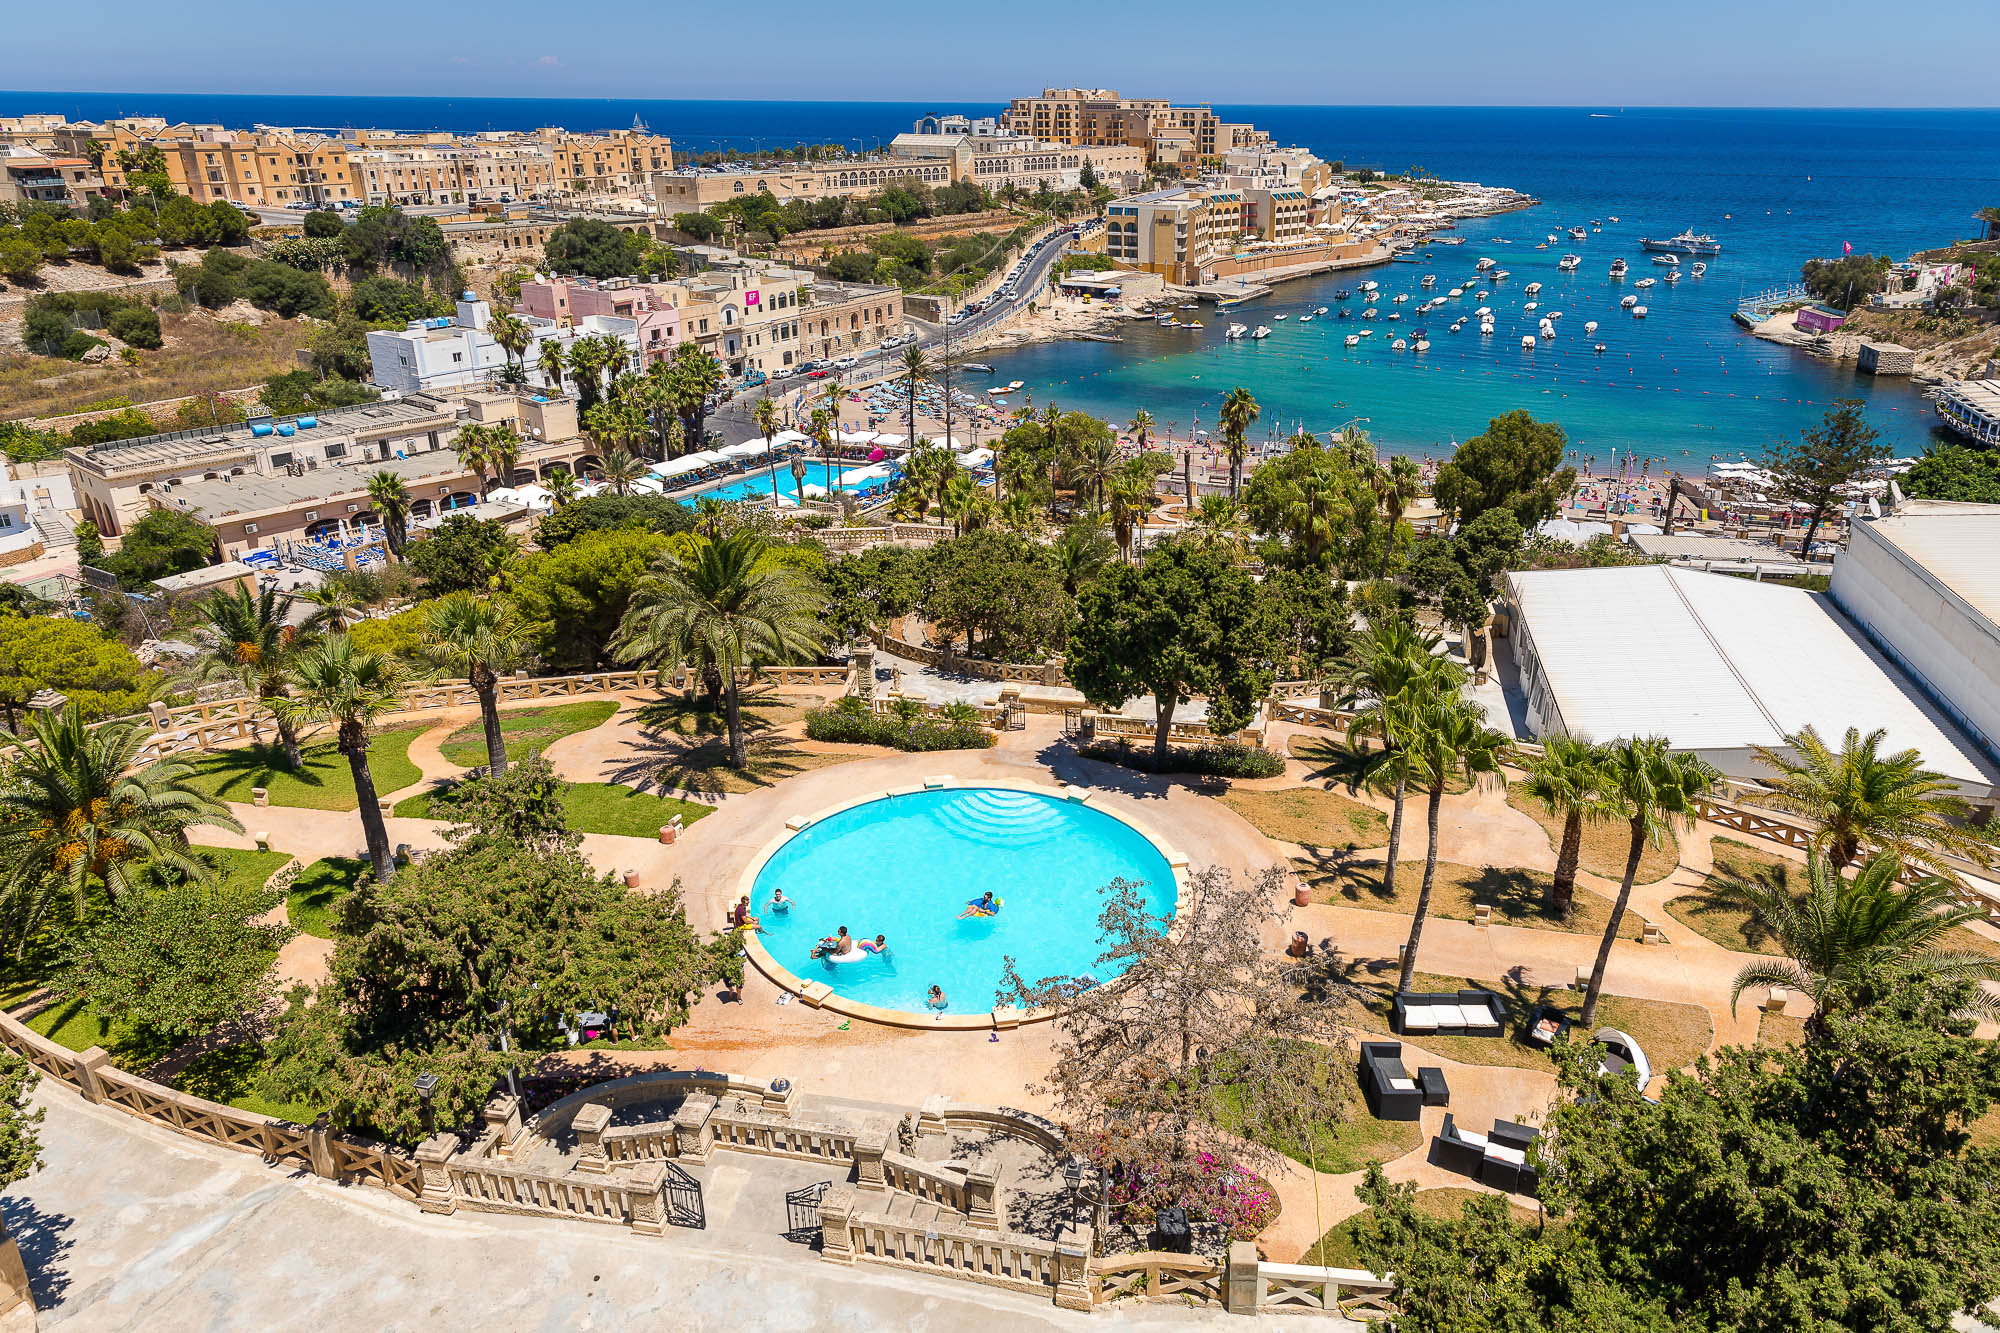 View from Villa Rosa of it's gardens where wedding guests are staying for a UK destination wedding to Malta. Photo by Elliot Nichol Photography